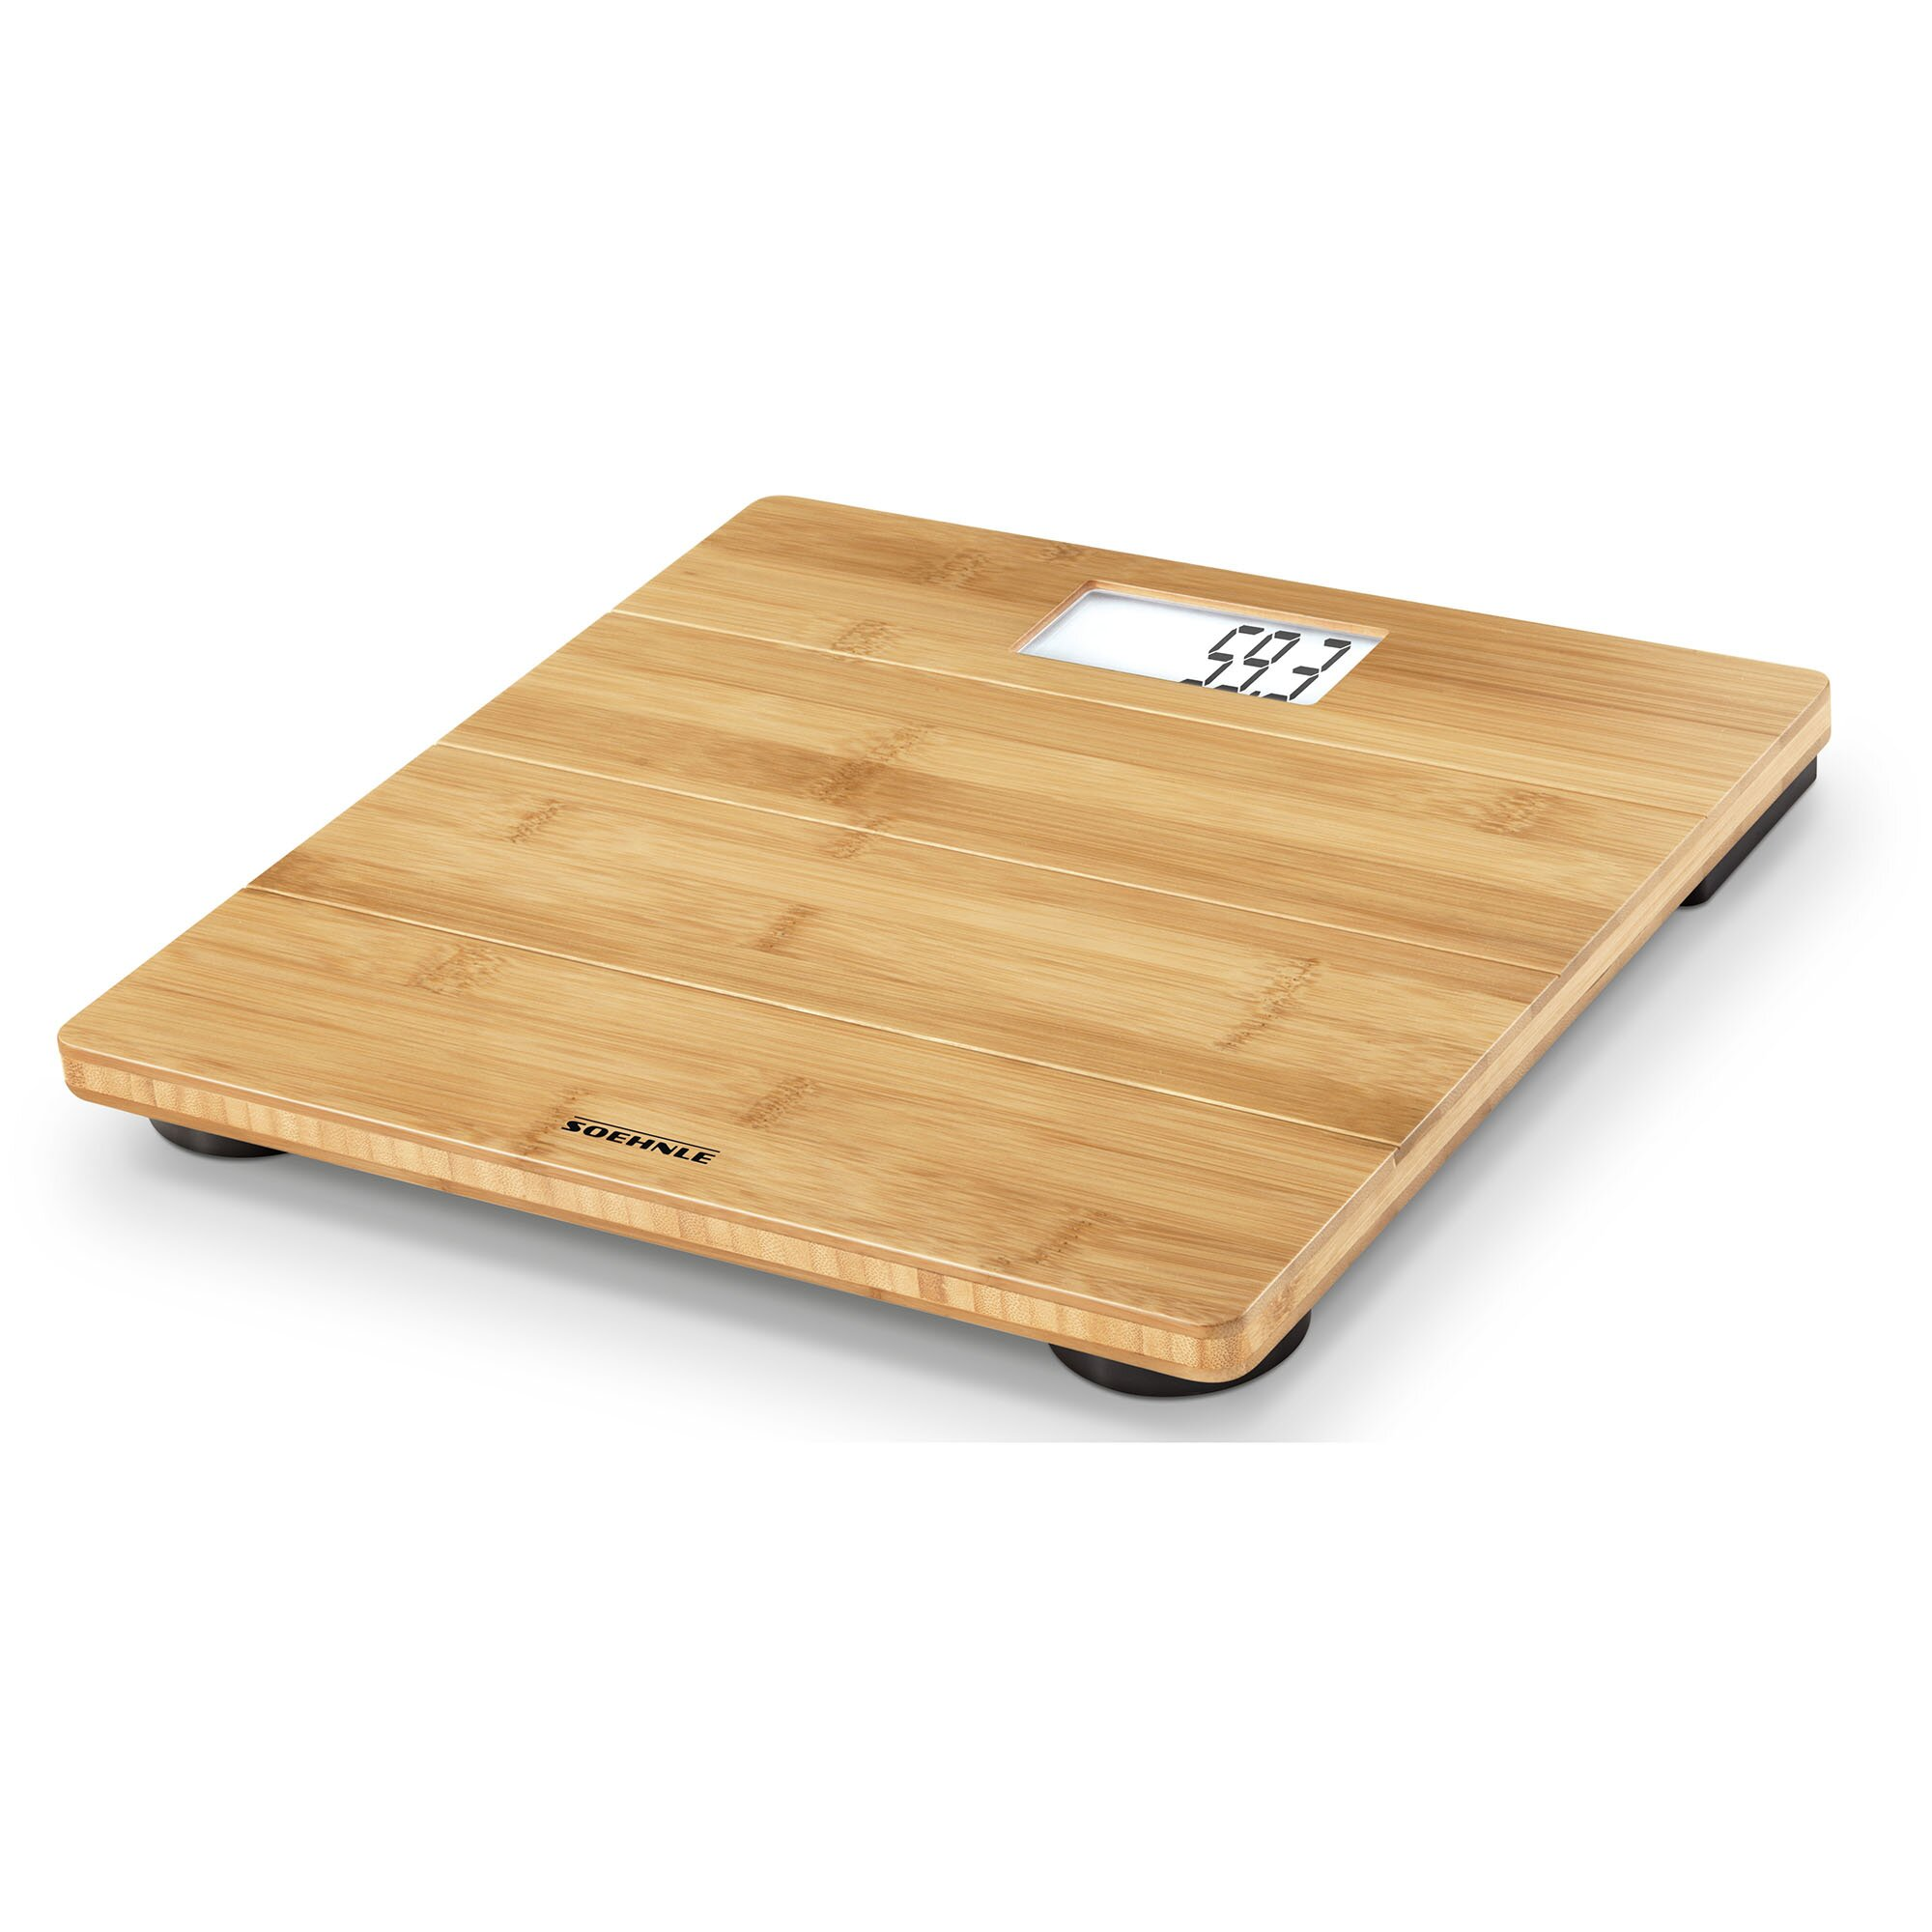 Calibrate digital bathroom scale - Soehnle Bamboo Personal Digital Scale